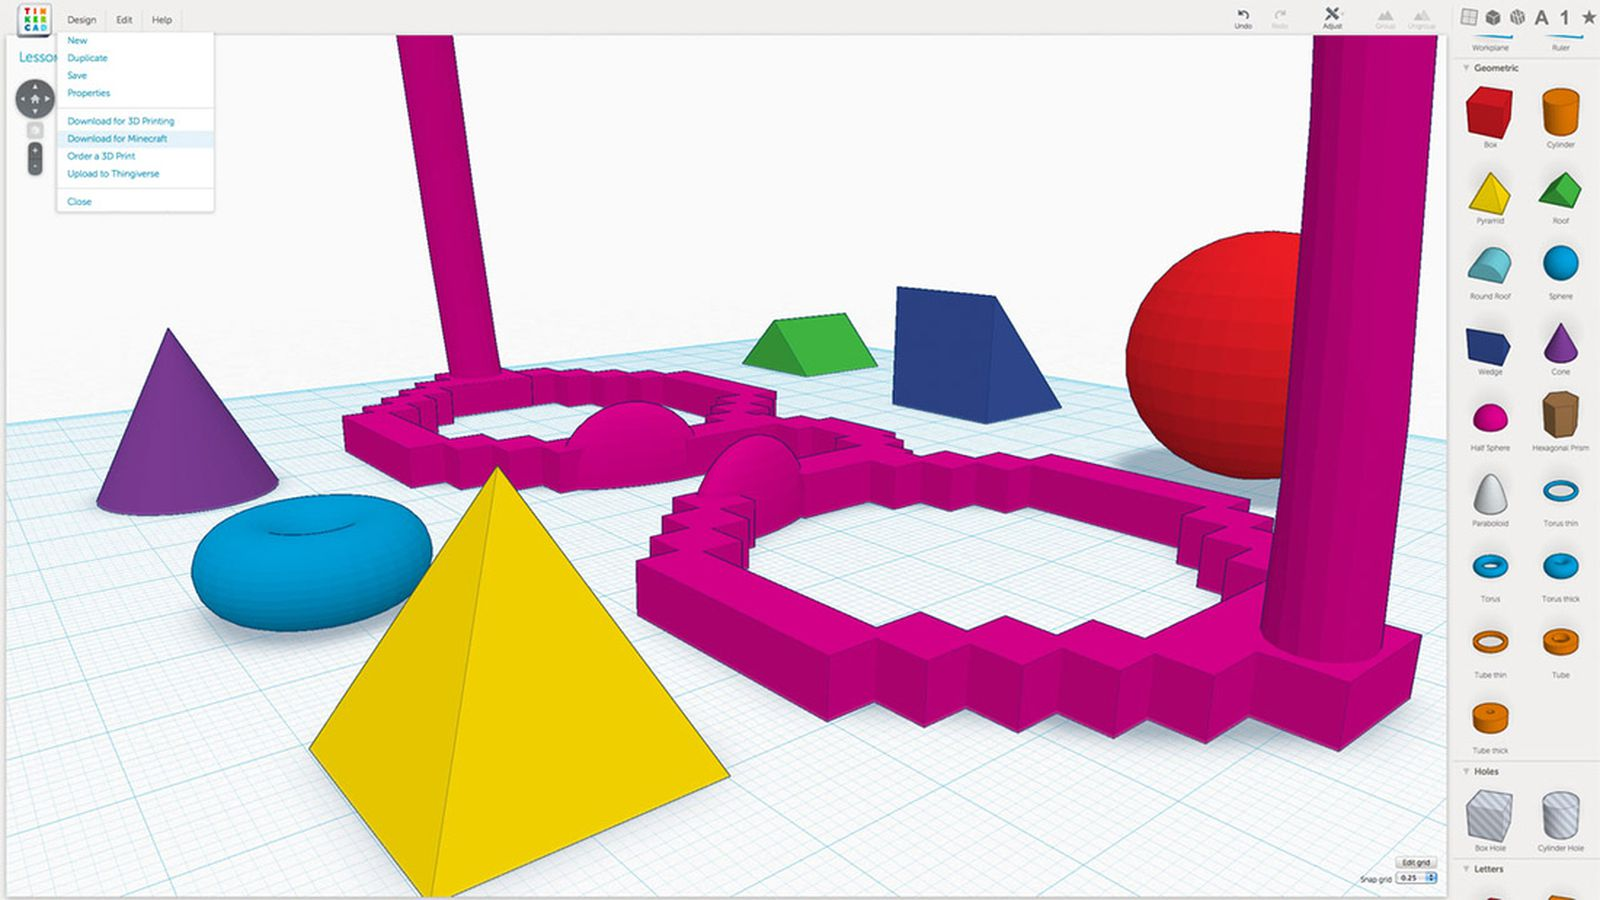 Free 3d design app tinkercad adds fast simple minecraft for 3d design app